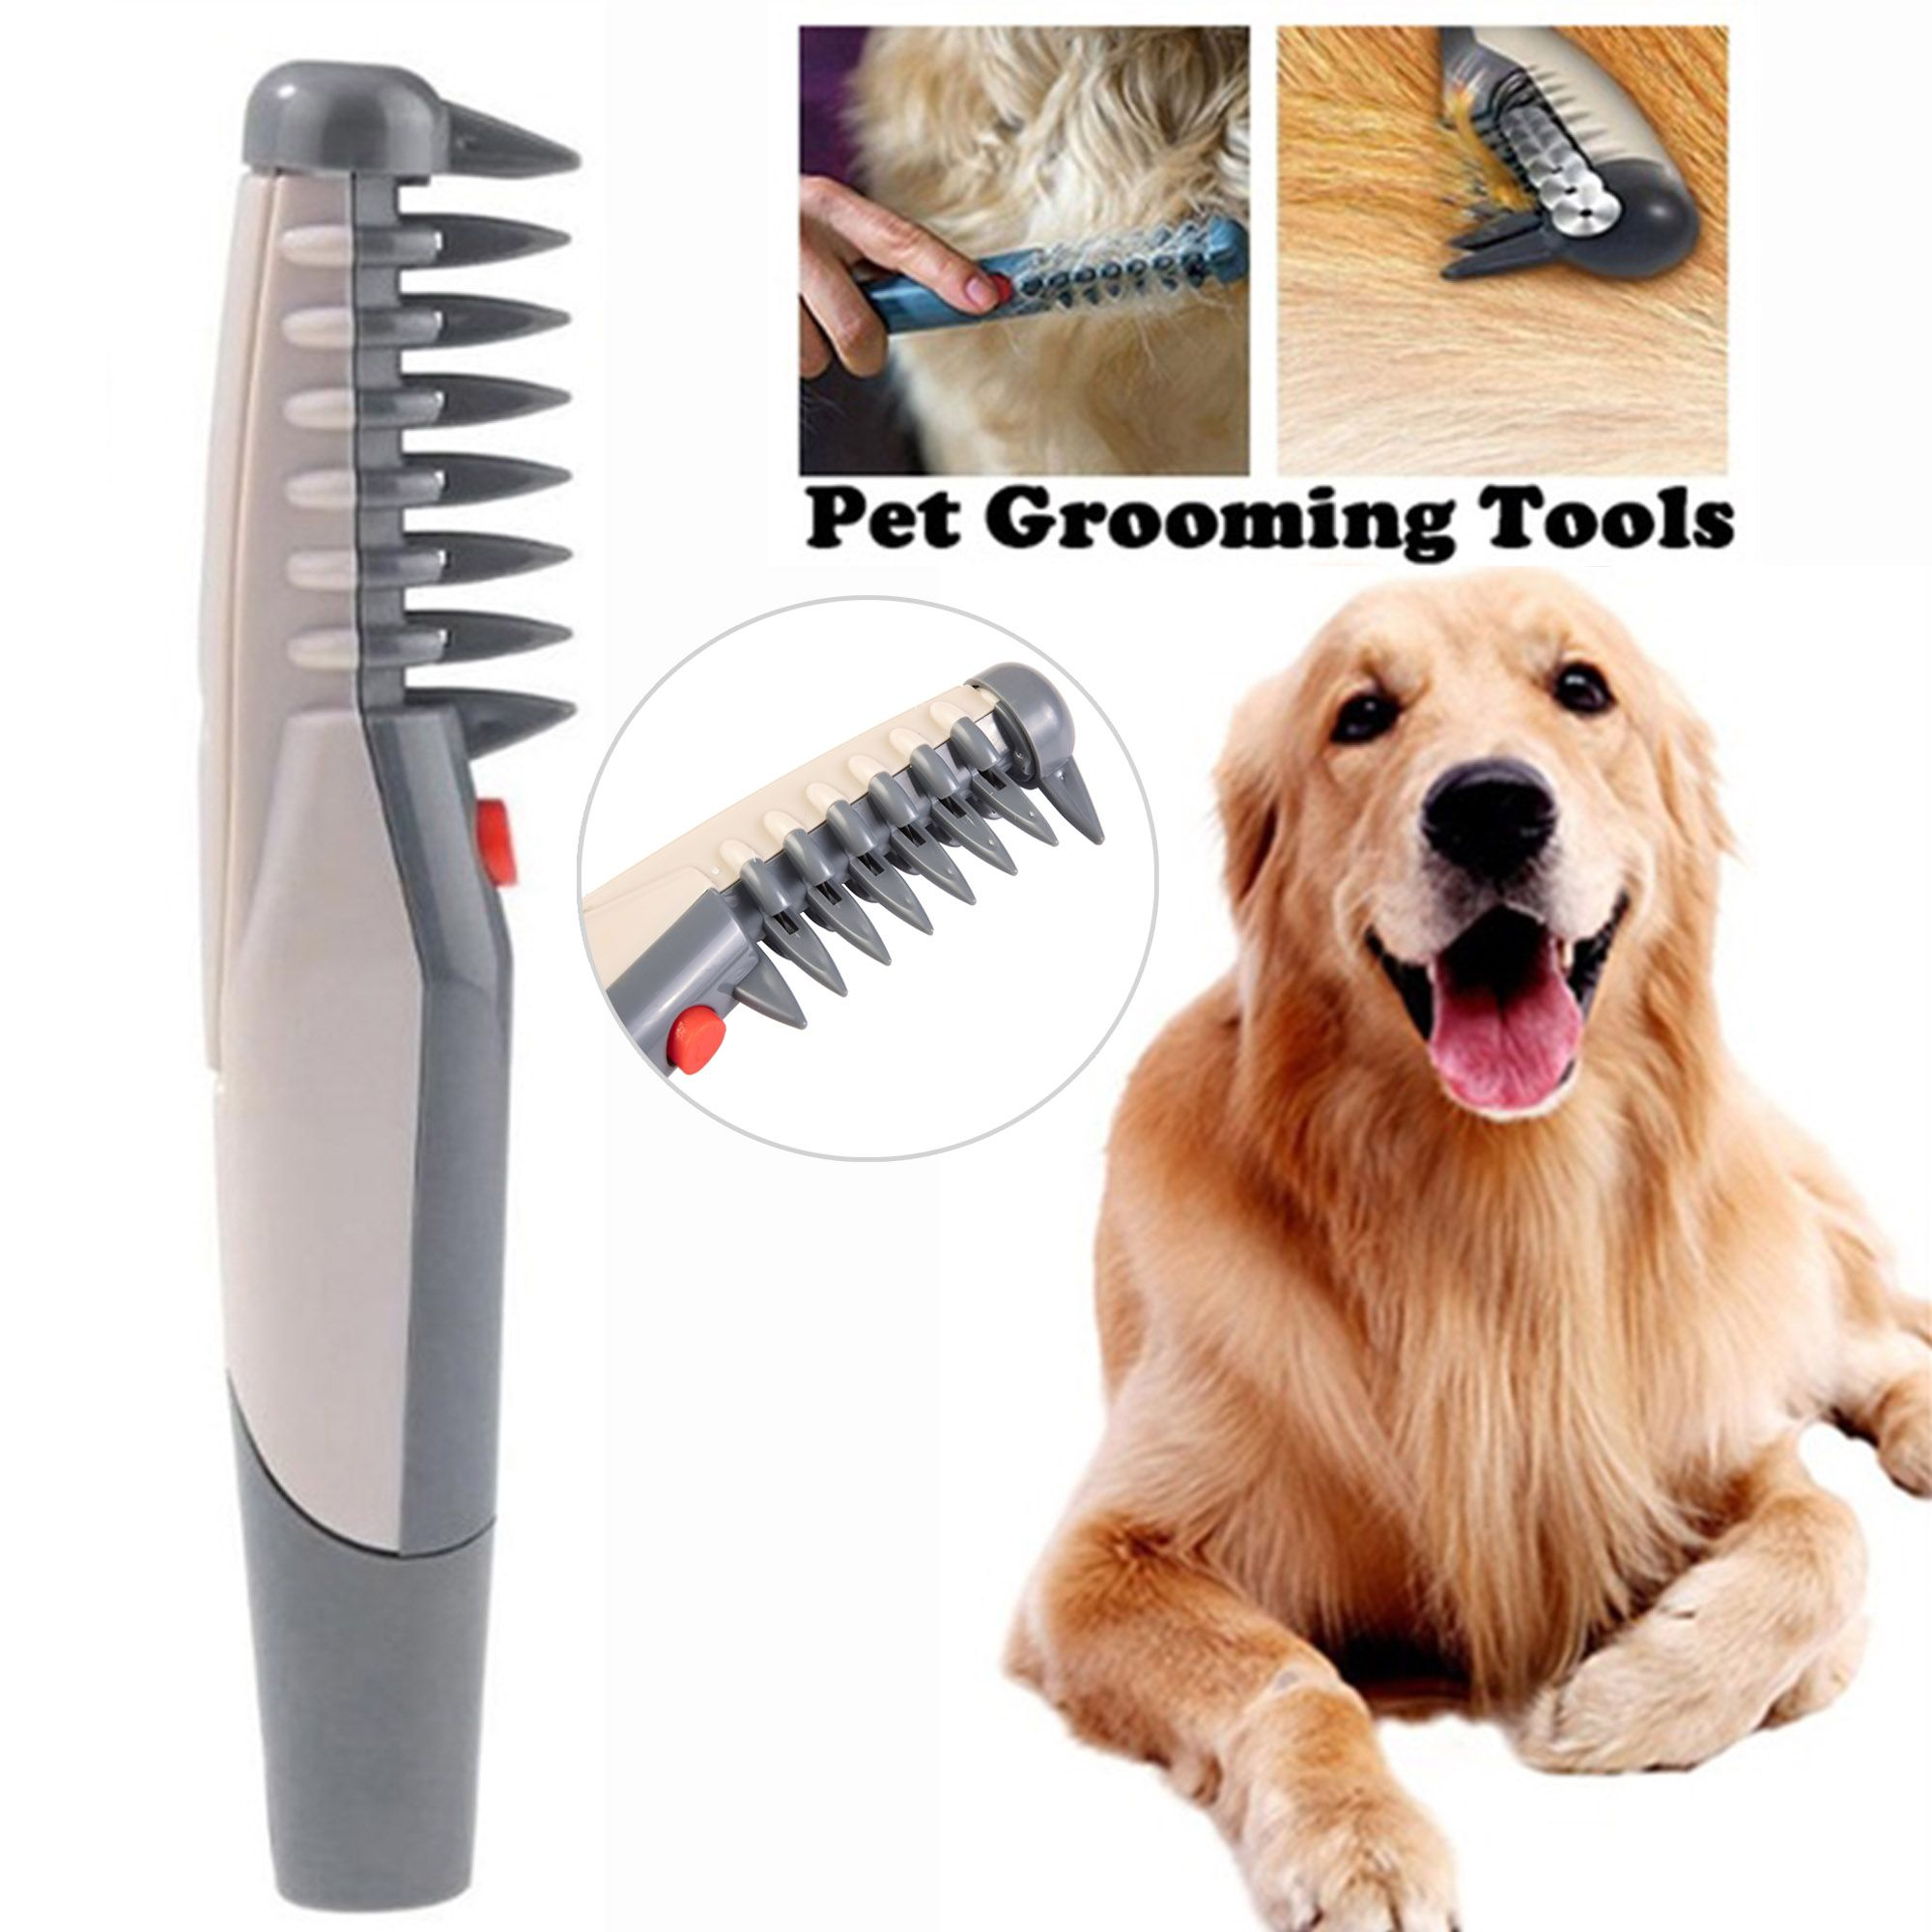 Nk Home Quiet Electric Pet Trimmer Clipper Shaver Grooming Kit Set For Pet Cat Dog Hair Walmart Com In 2020 Dog Hair Grooming Kit Pet Grooming Tools